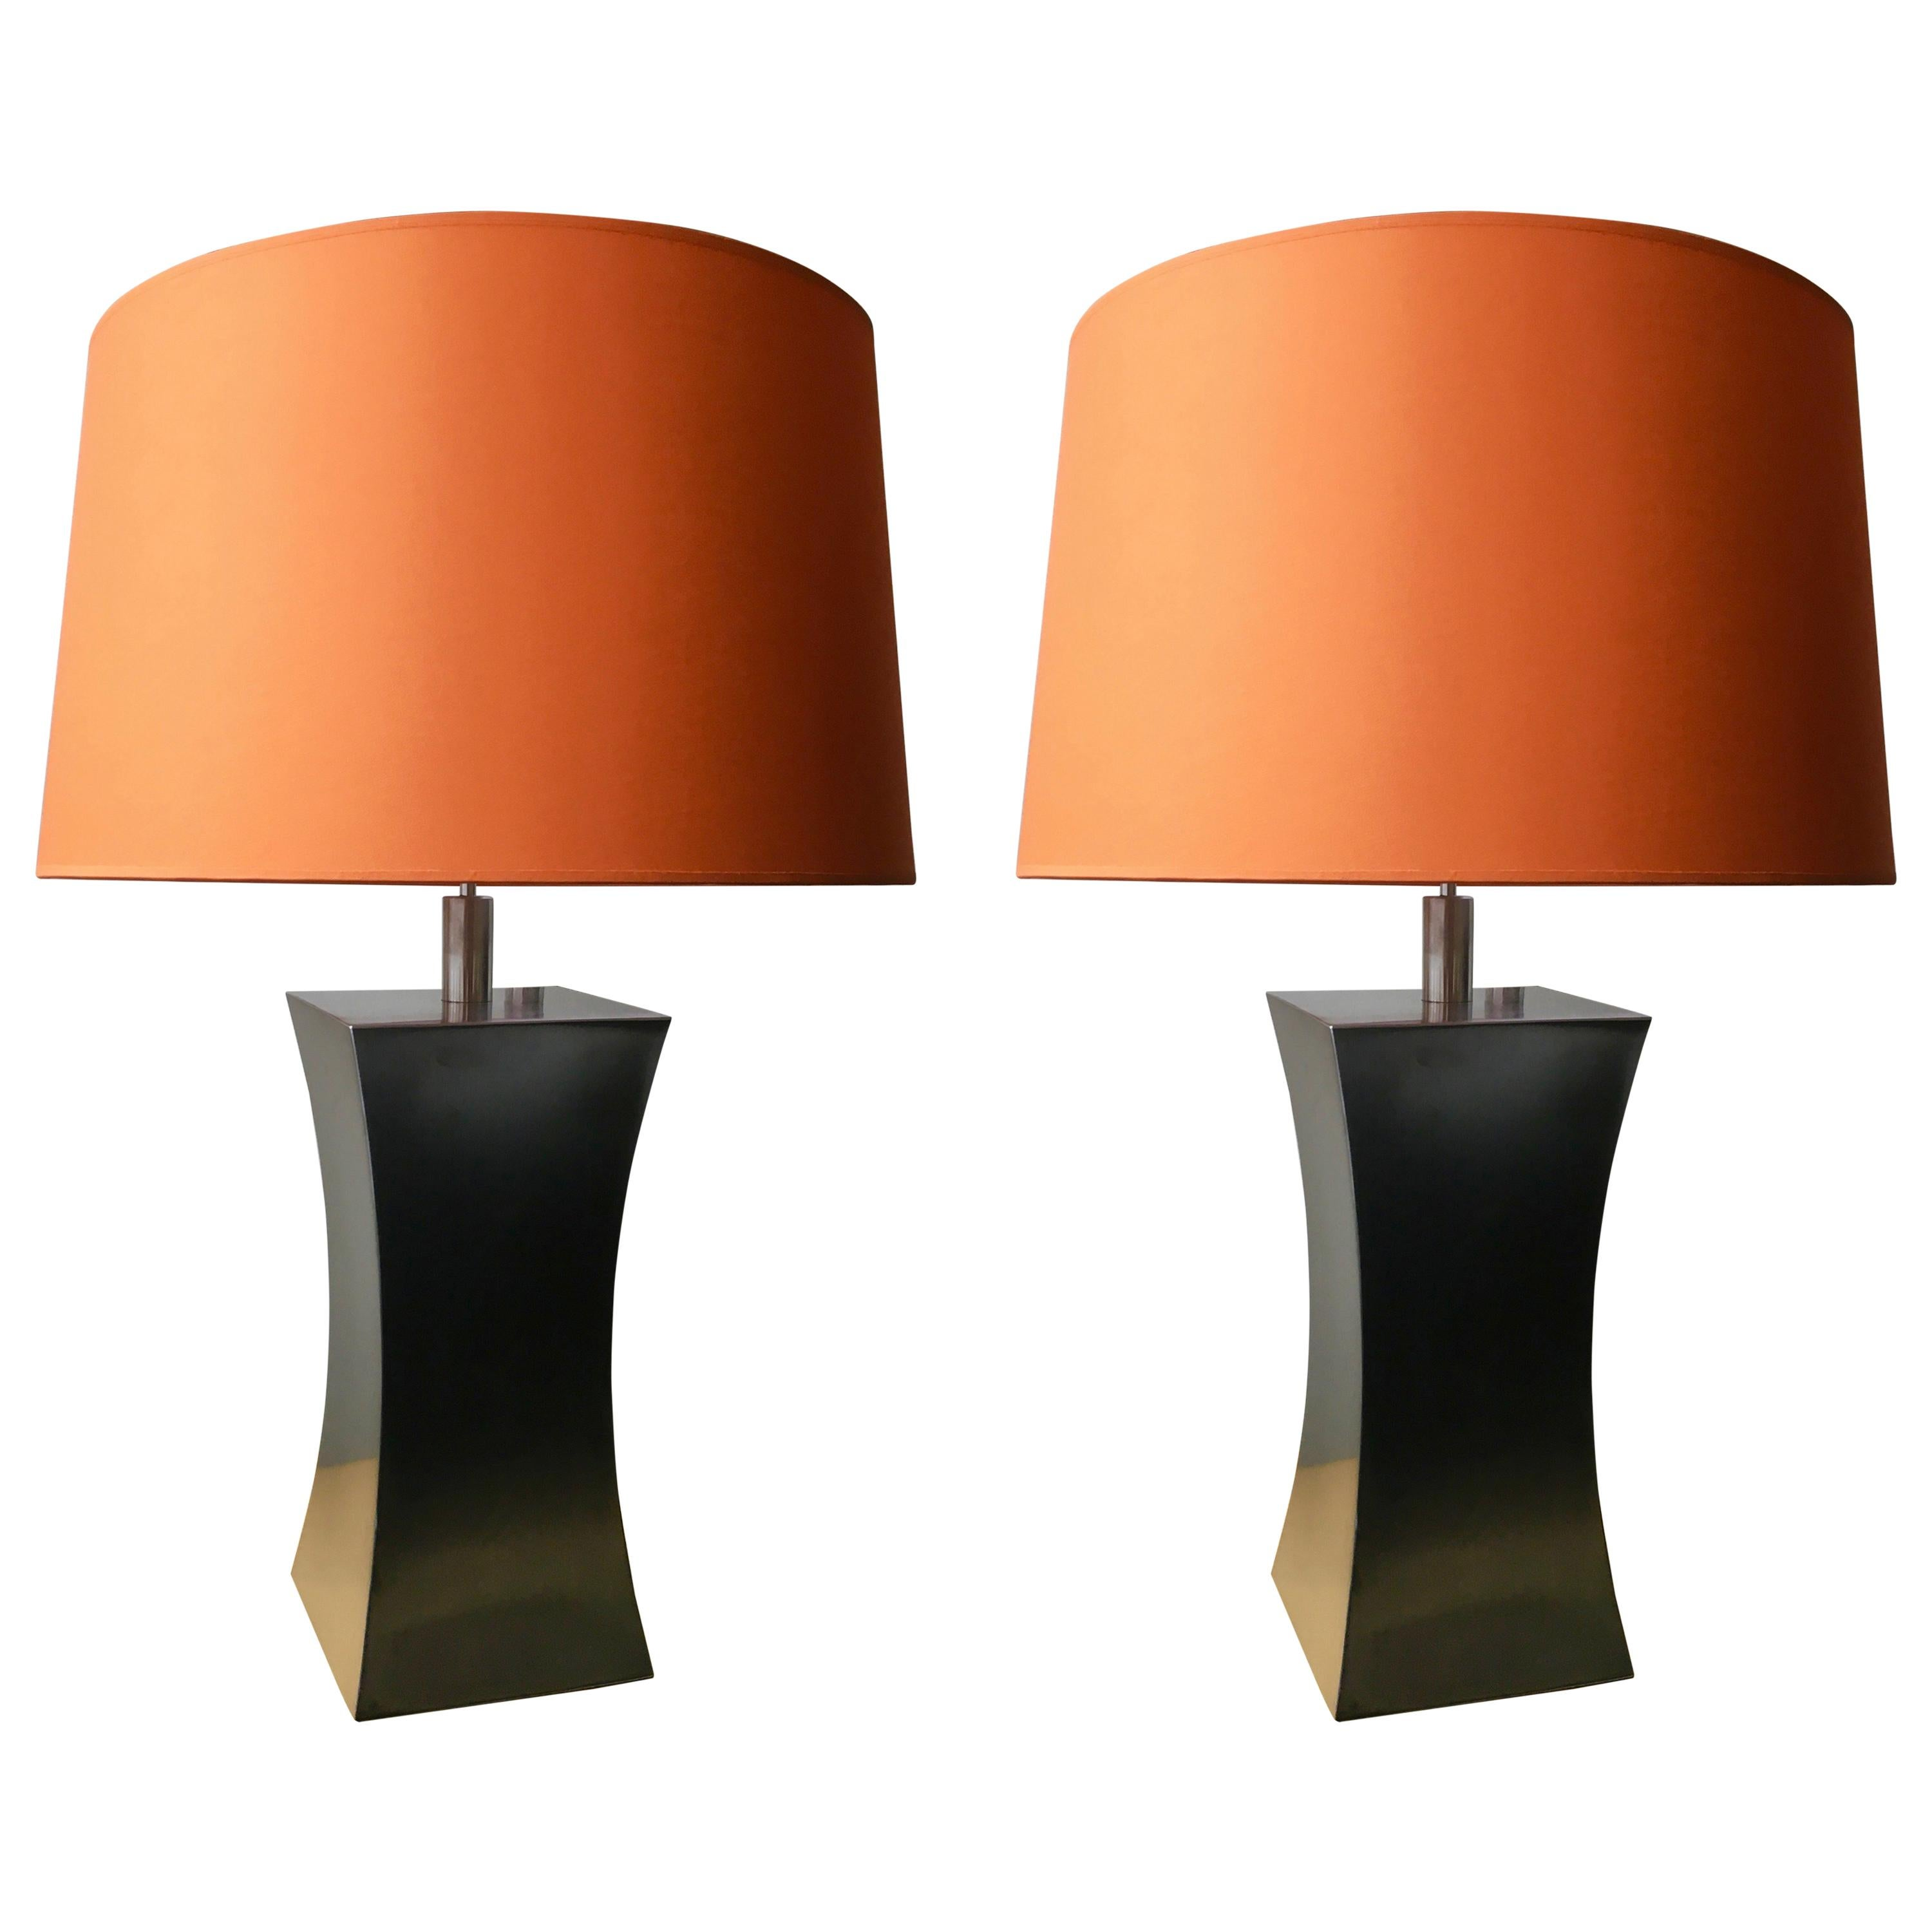 Pair of Steel Table Lamps with Orange Lampshades by Françoise Sée, France, 1970